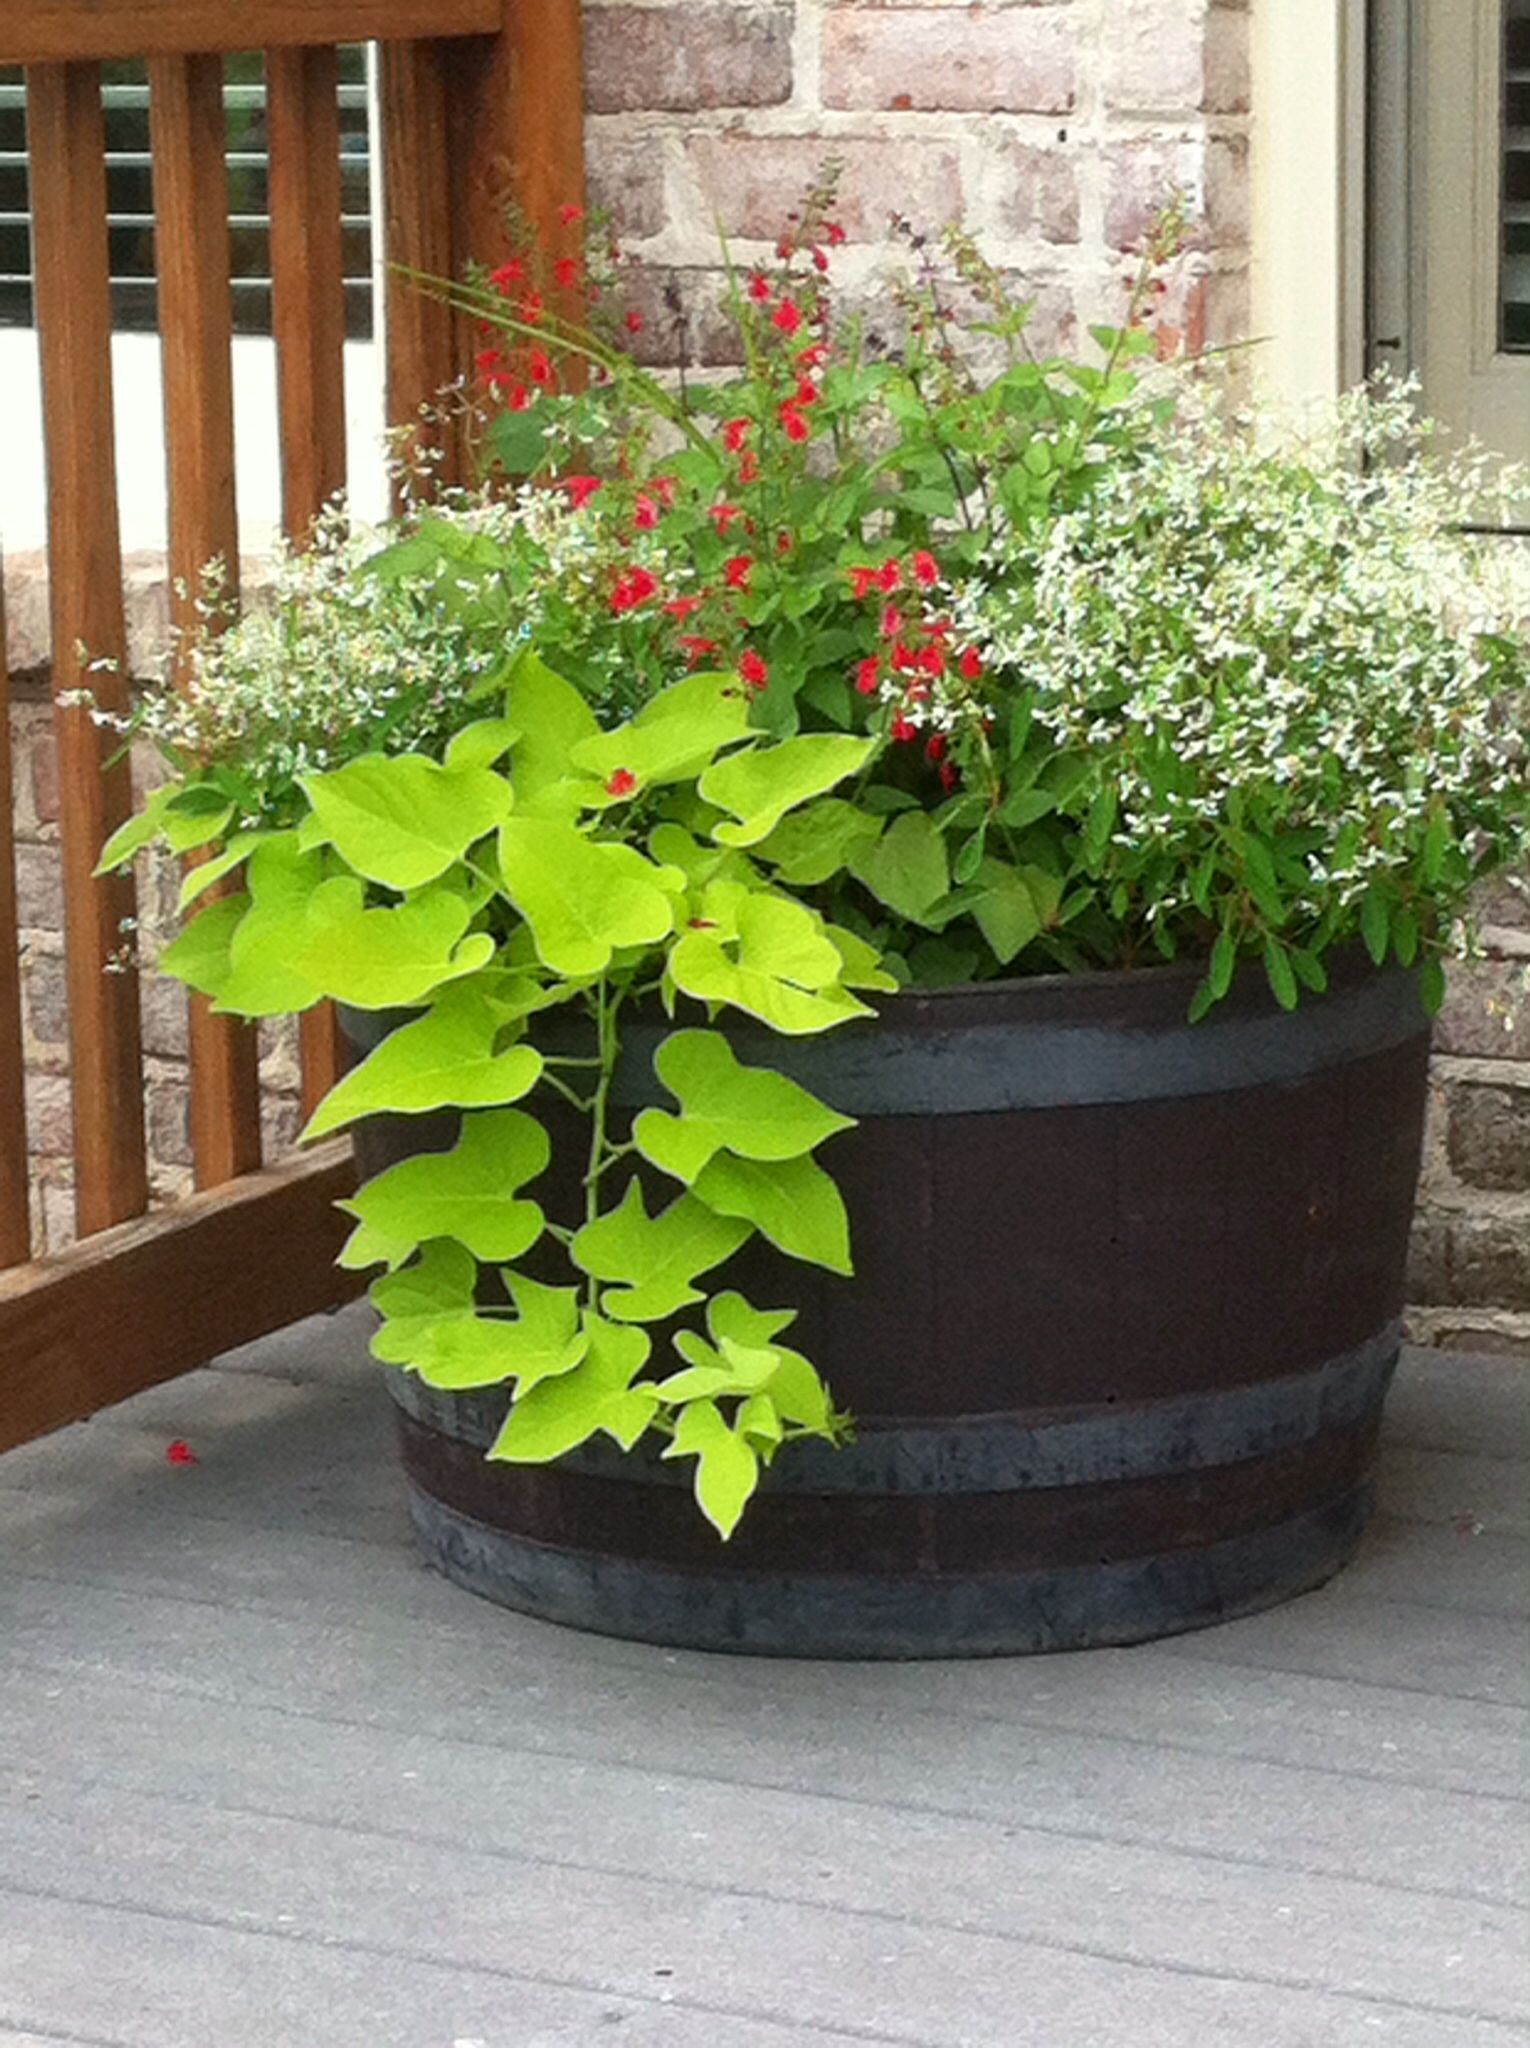 full sun whiskey barrel container garden with lime green sweet potato vine,white diamond frost, pink geranium, red salvia,and purple thai basil that is wonderful to have right outside on your deck for salads and stir fry dishes.